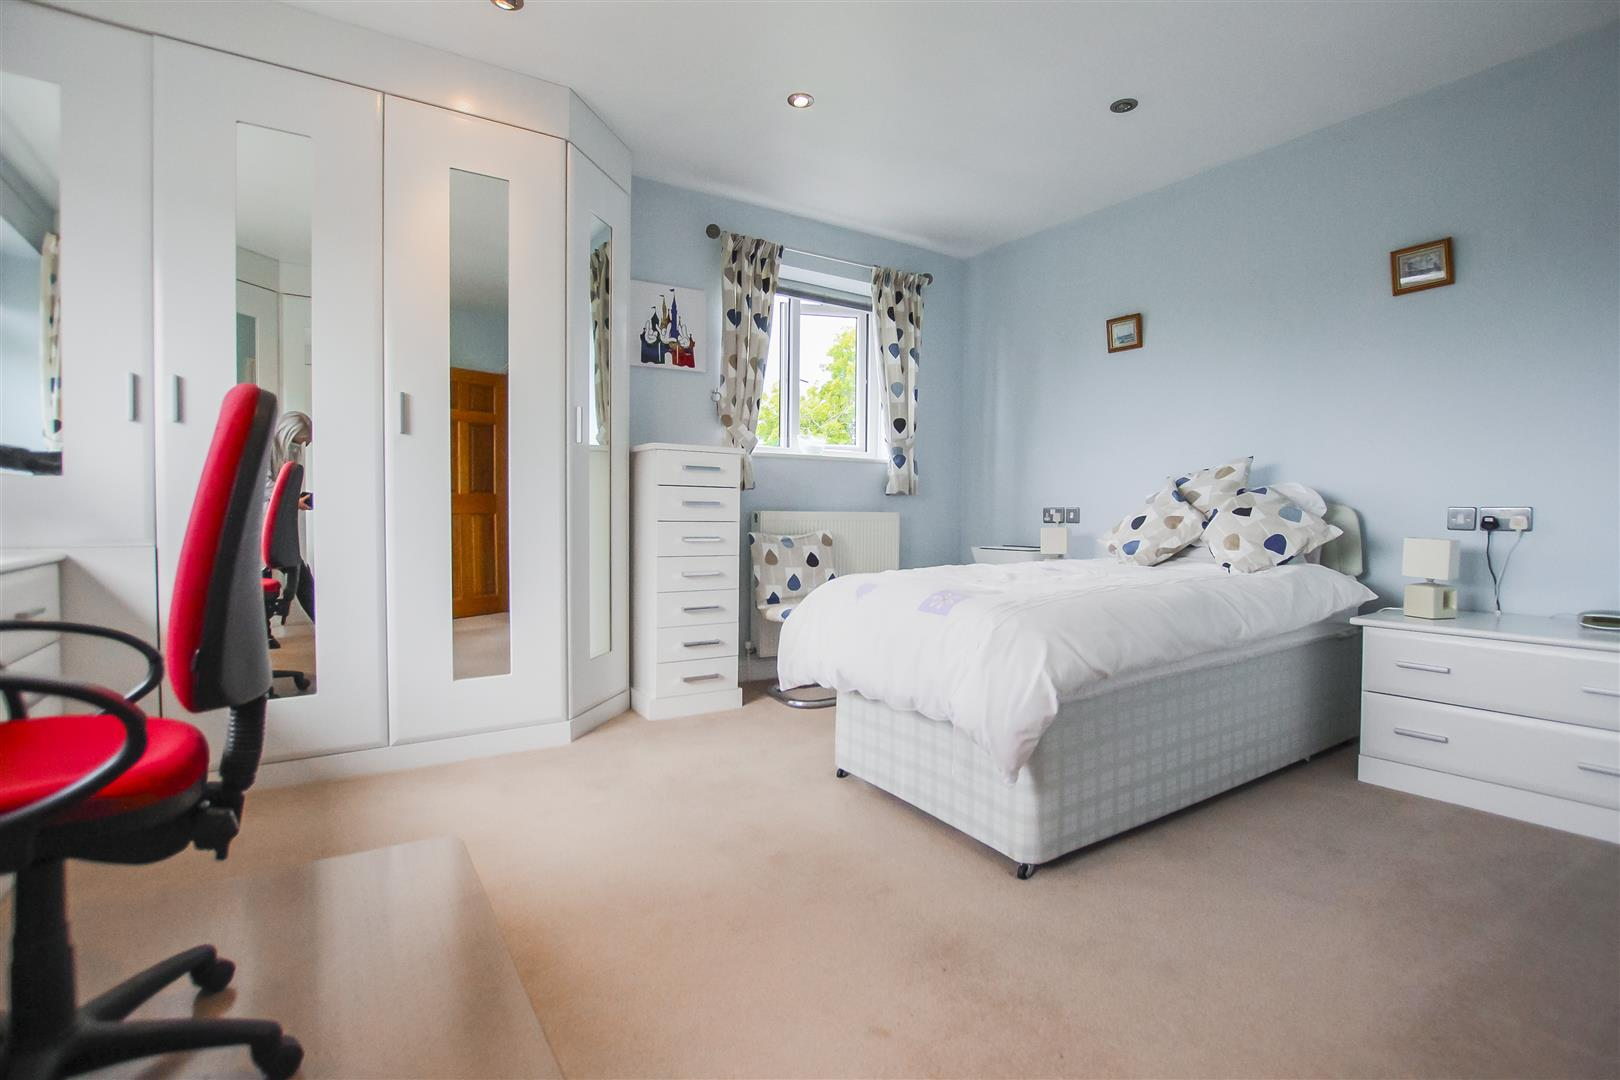 6 Bedroom Detached House For Sale - Annex Bedroom Two